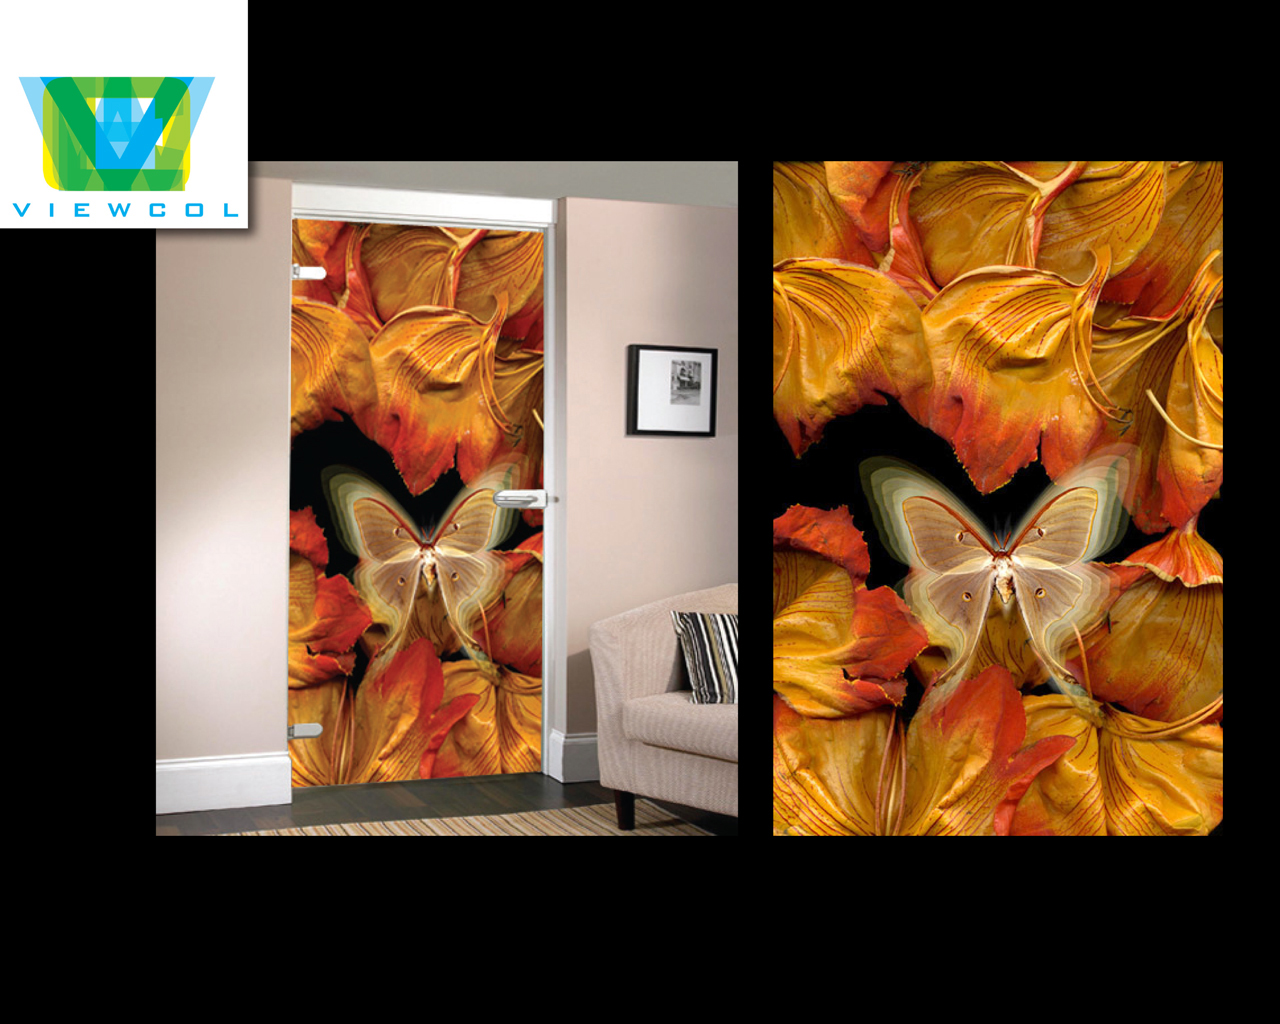 African tulip image printed on glass